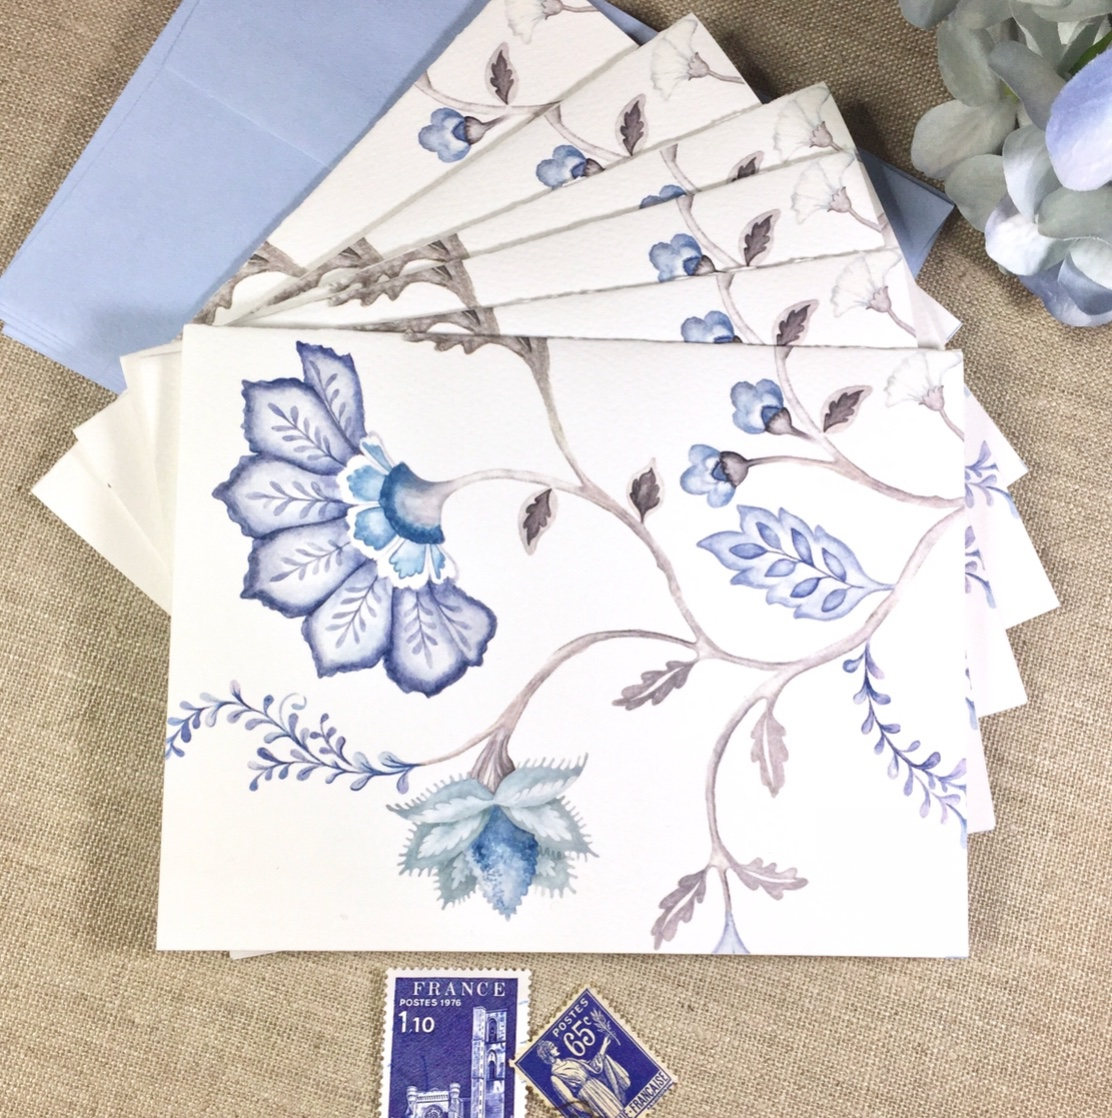 jacobean floral blue and White traditional Hand Painted fabric textile wallpaper gift wrap Stationery pattern